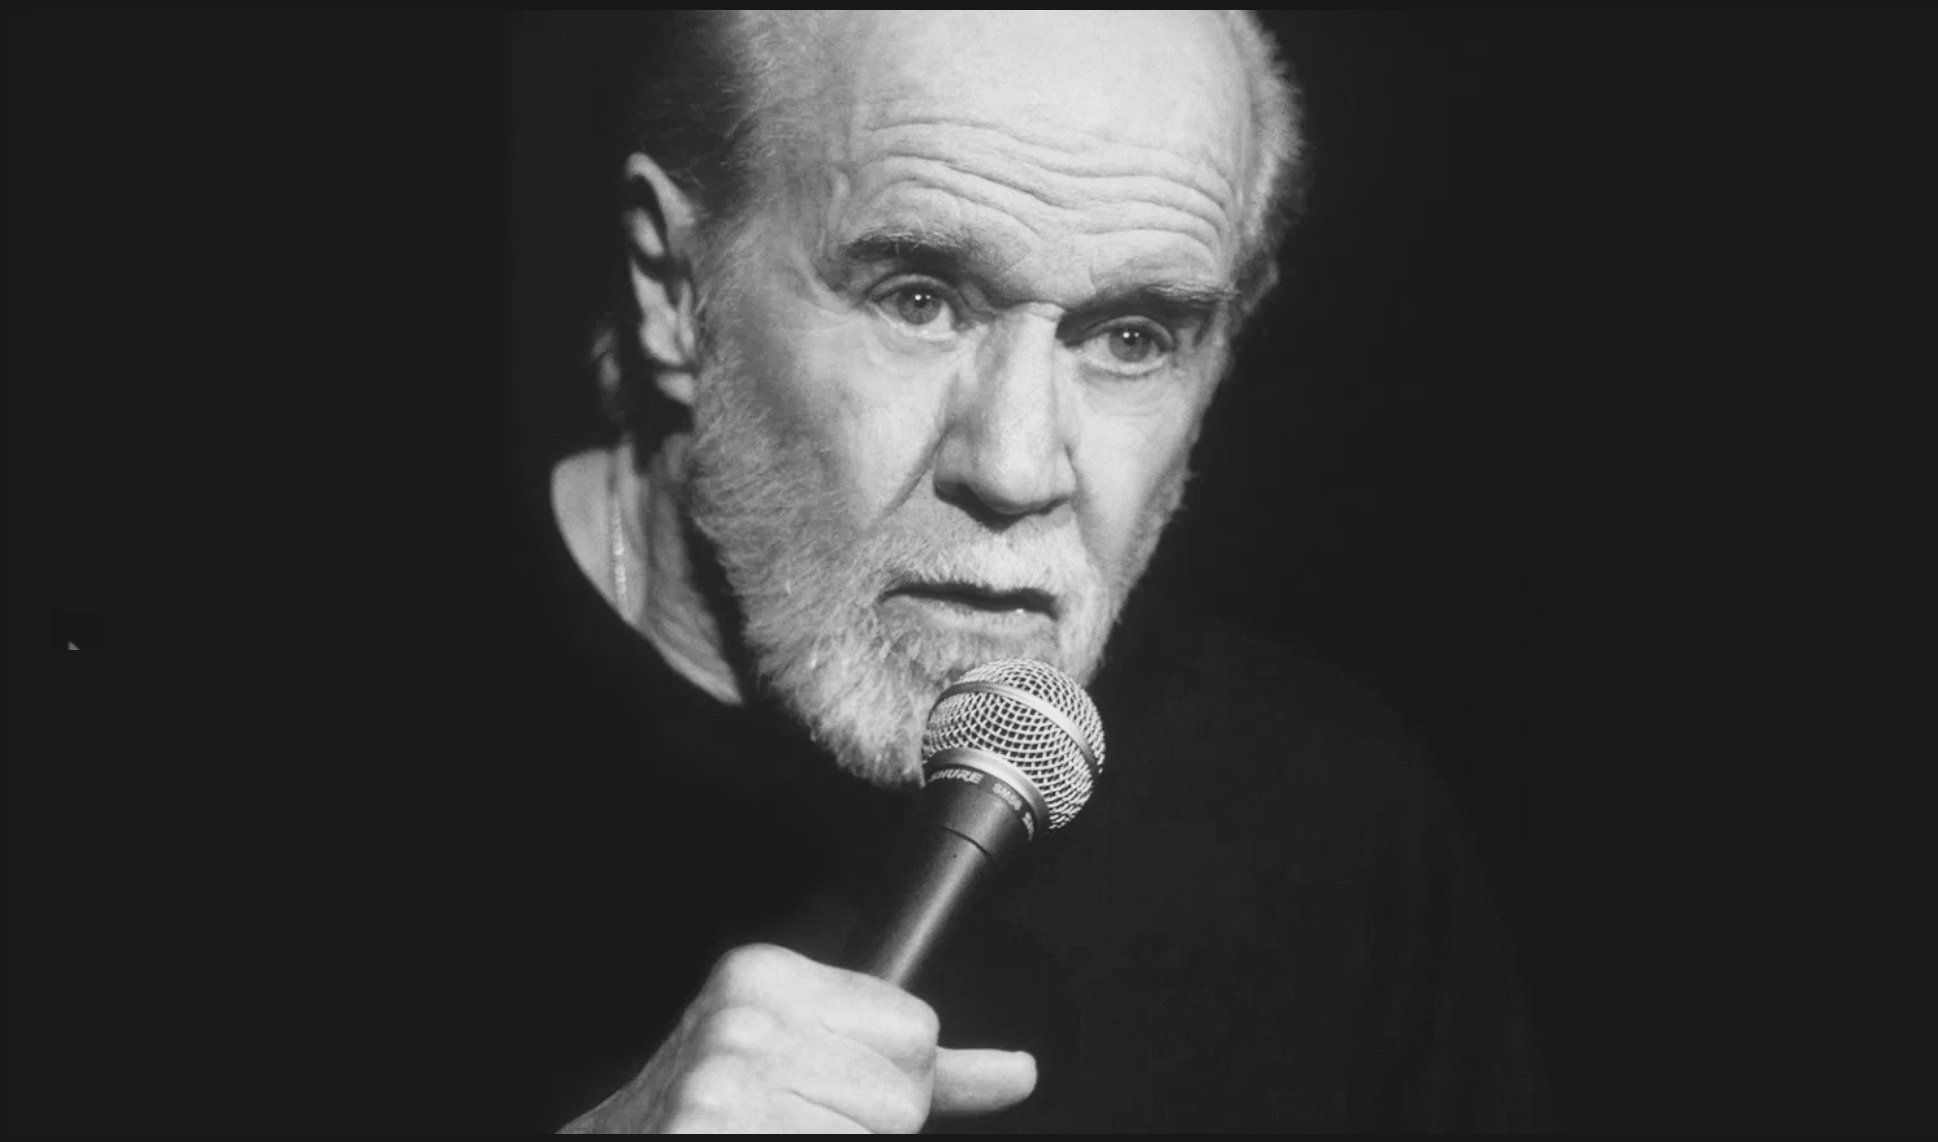 Mustard reccomend George carlin assholes